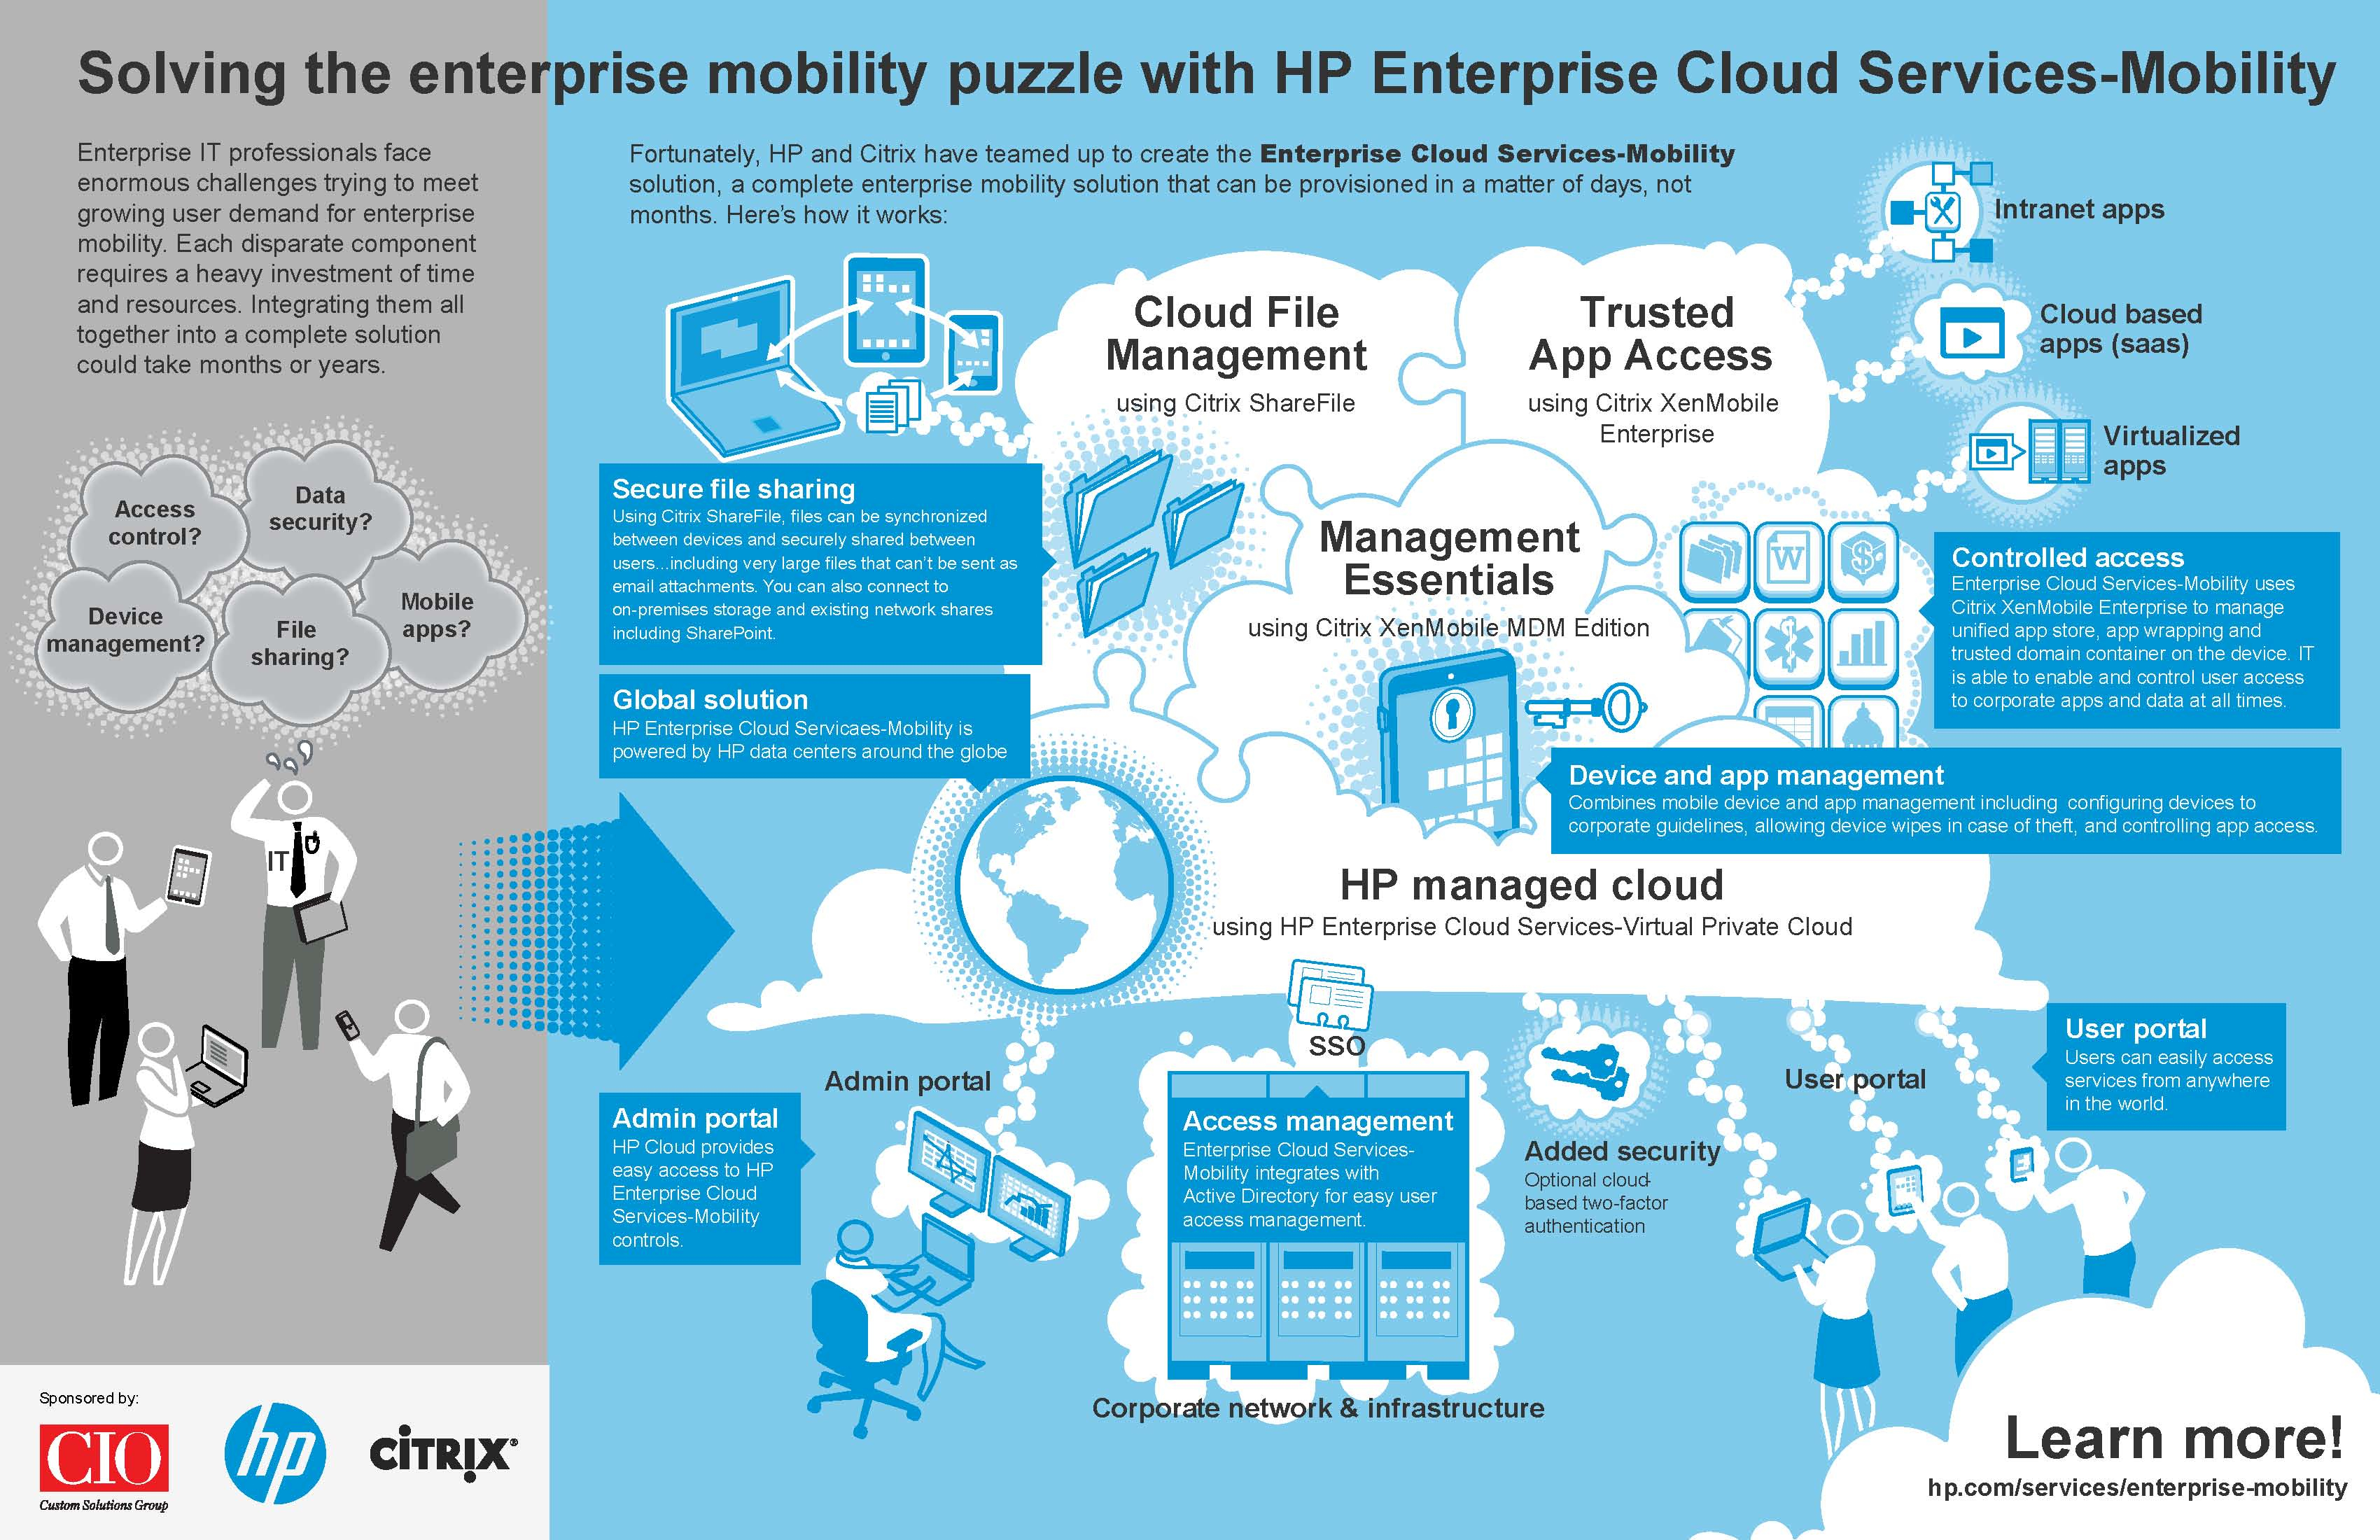 HP Citrix Enterprise Mobility Puzzle Pictogram